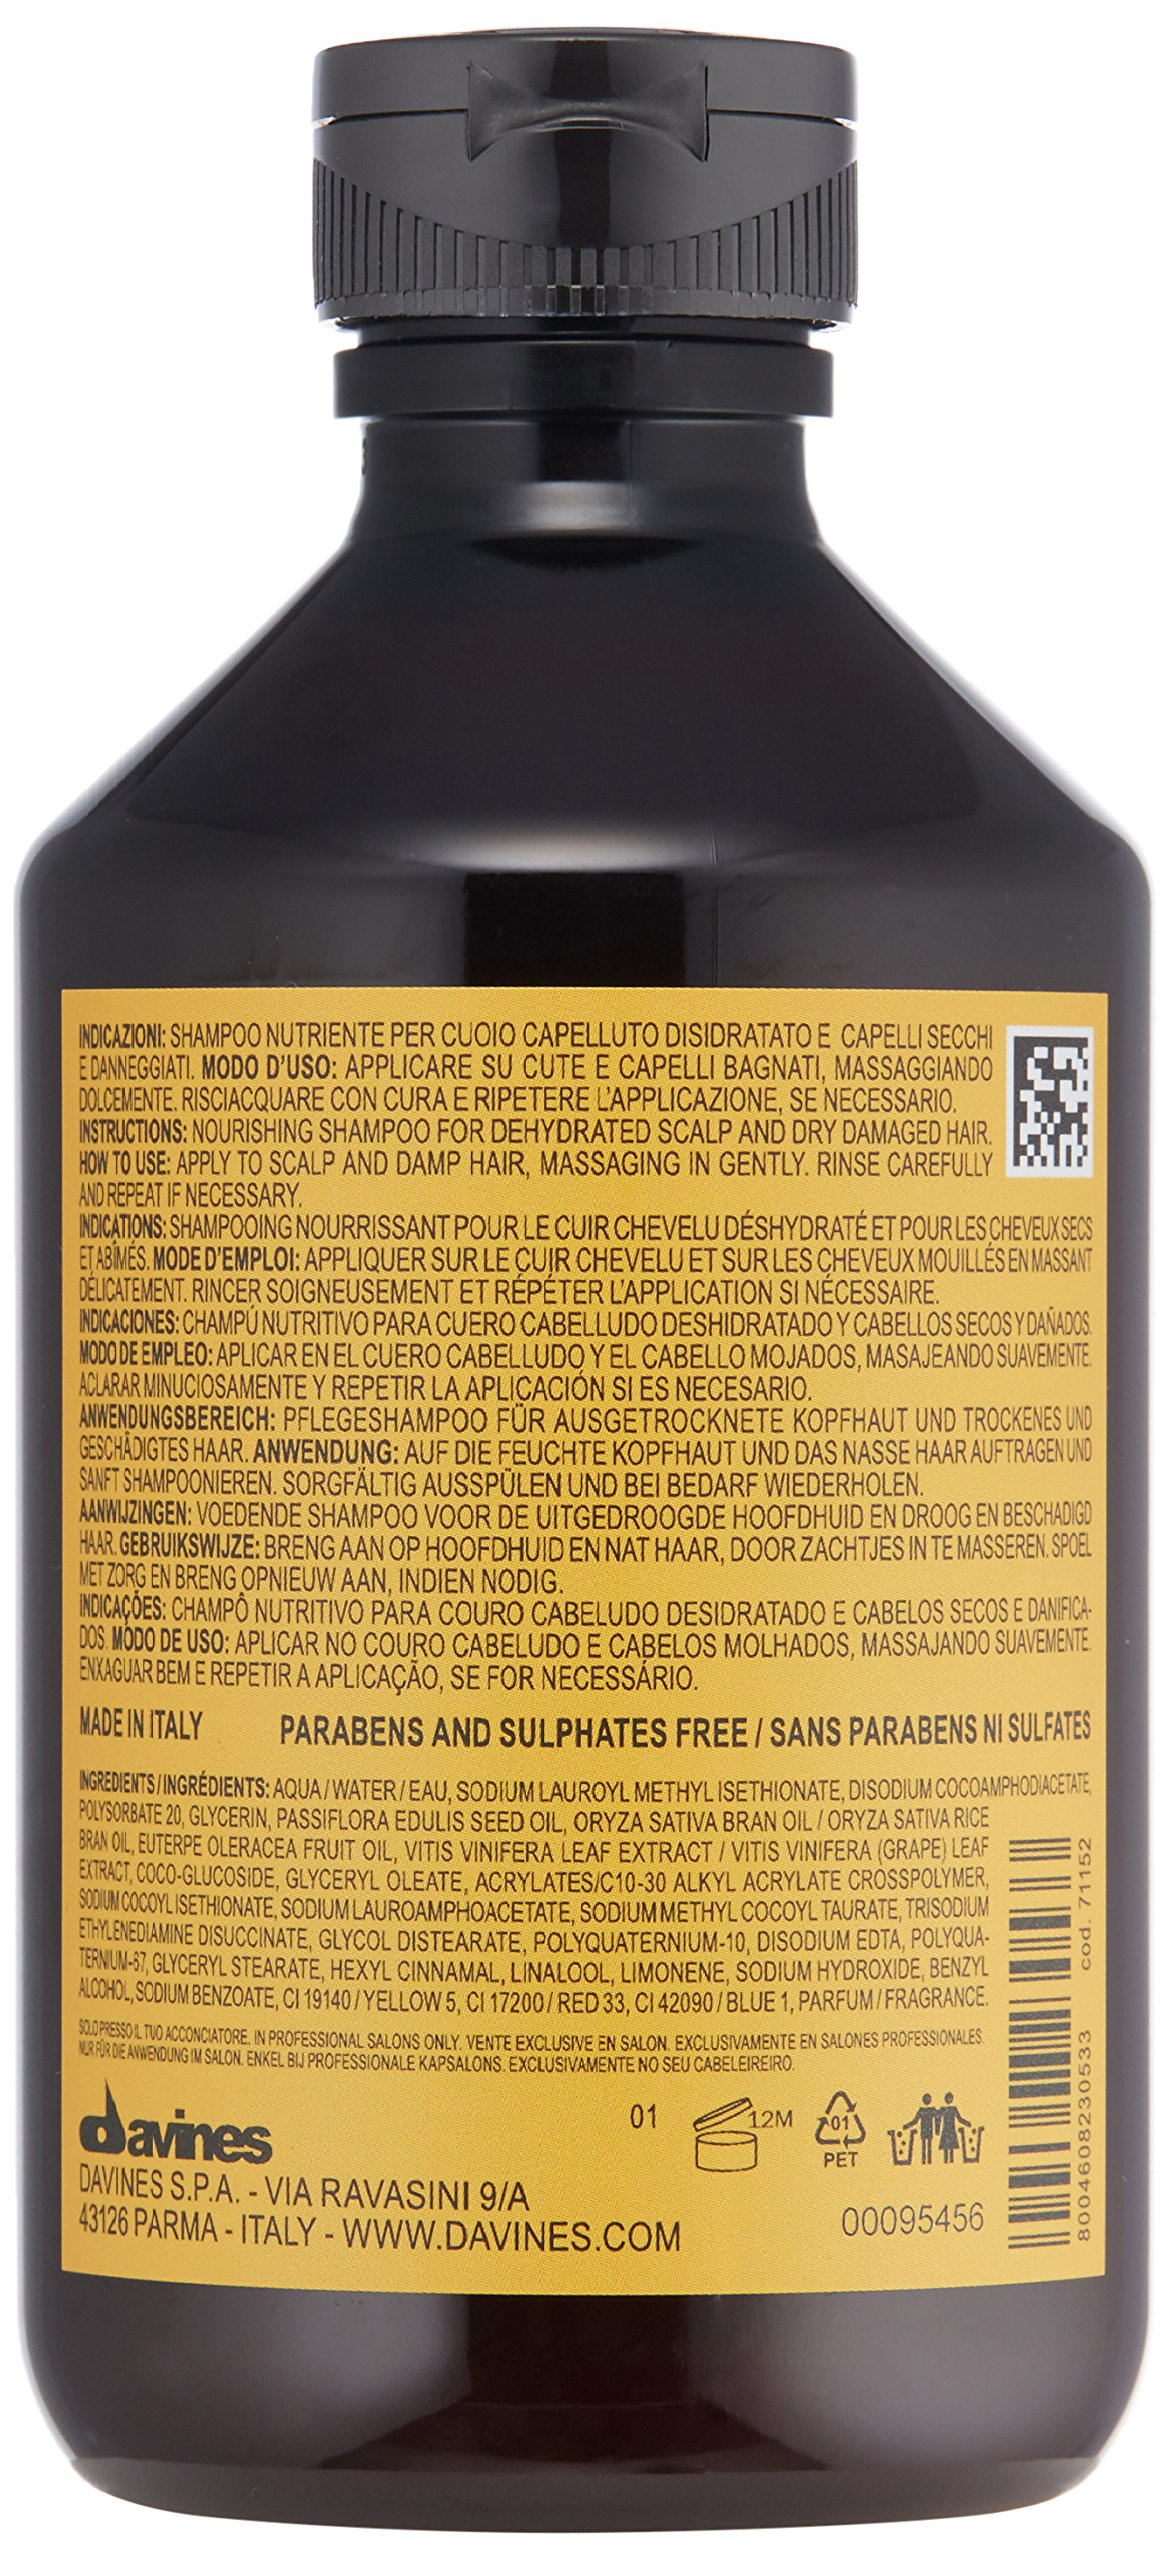 Davines - Natural Tech Shampooing nourrissant 250 ml